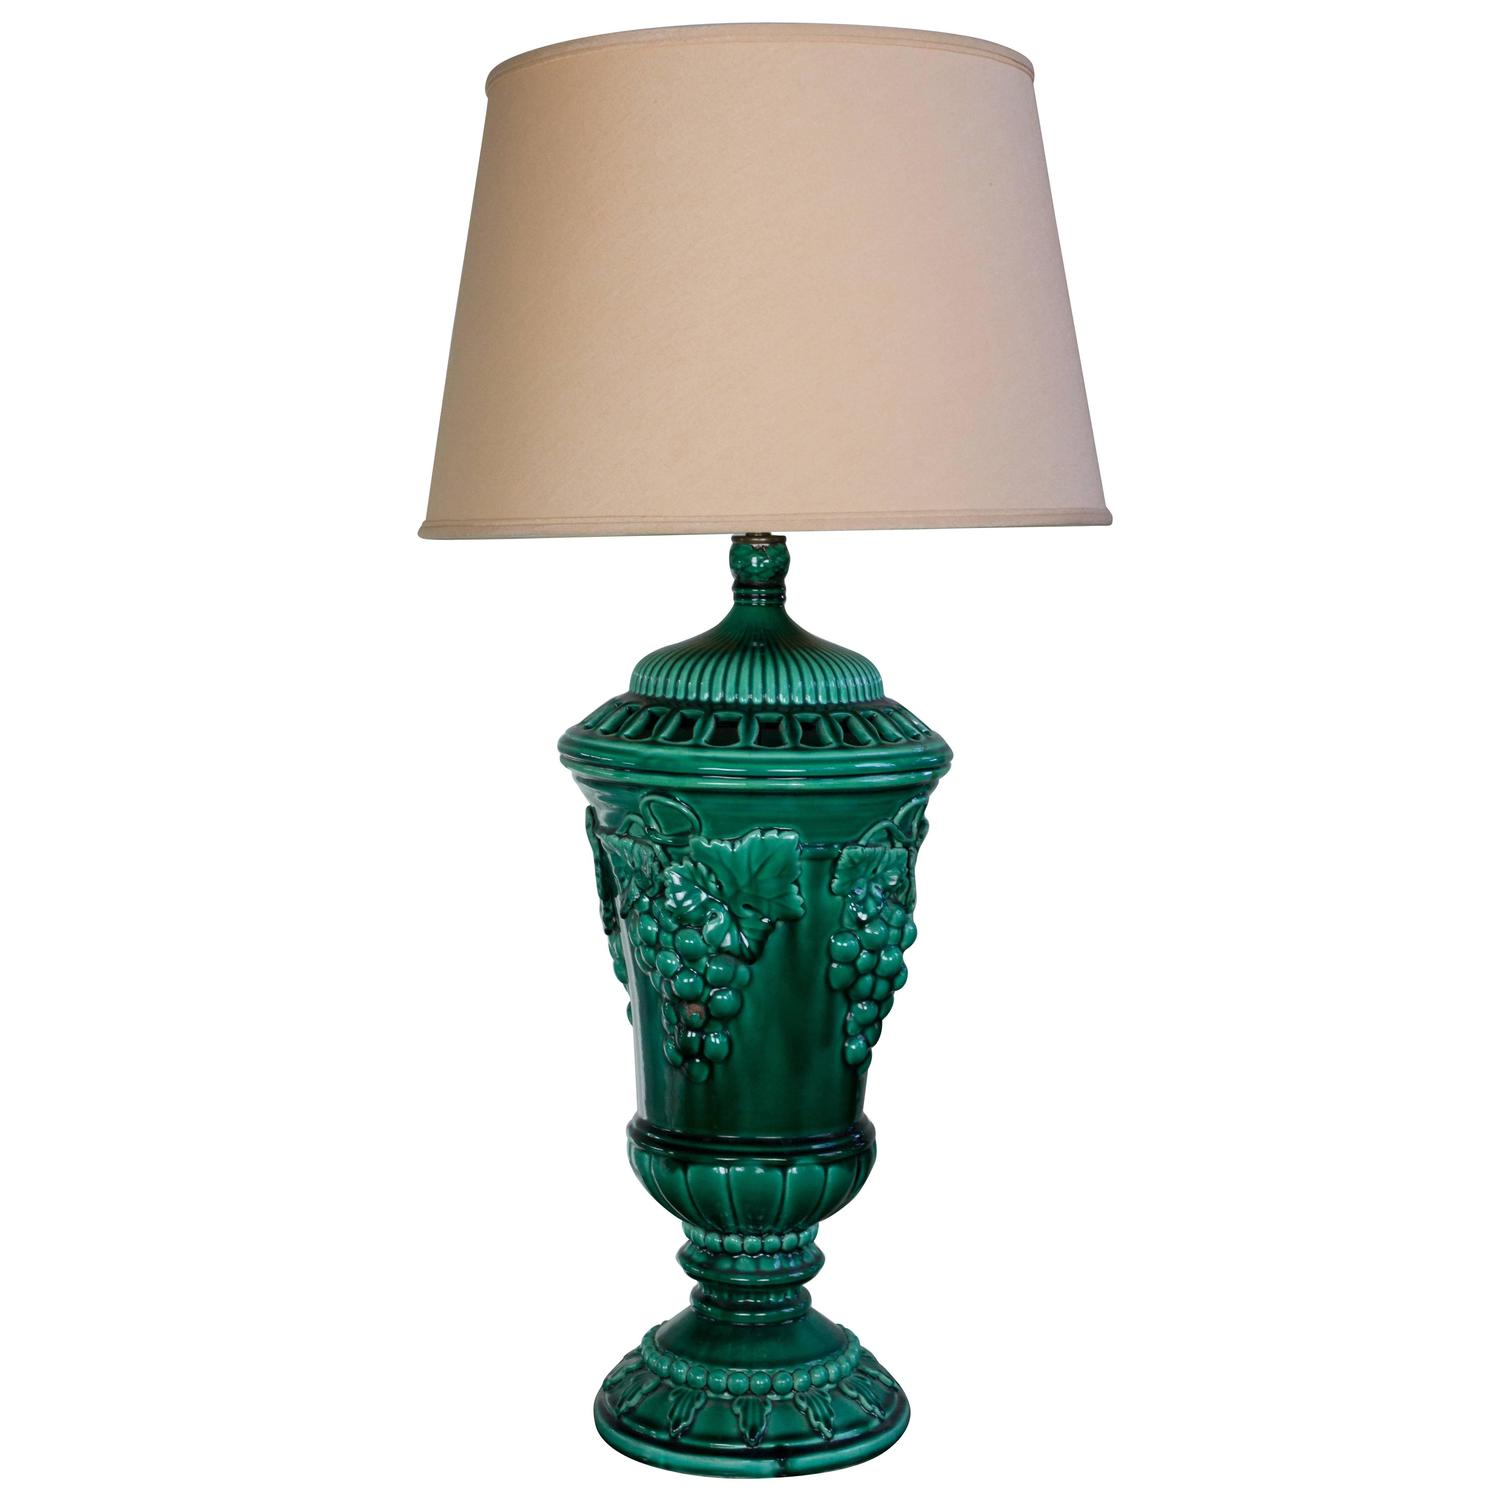 Large Lamps For Sale Large Ceramic Table Lamp For Sale At 1stdibs